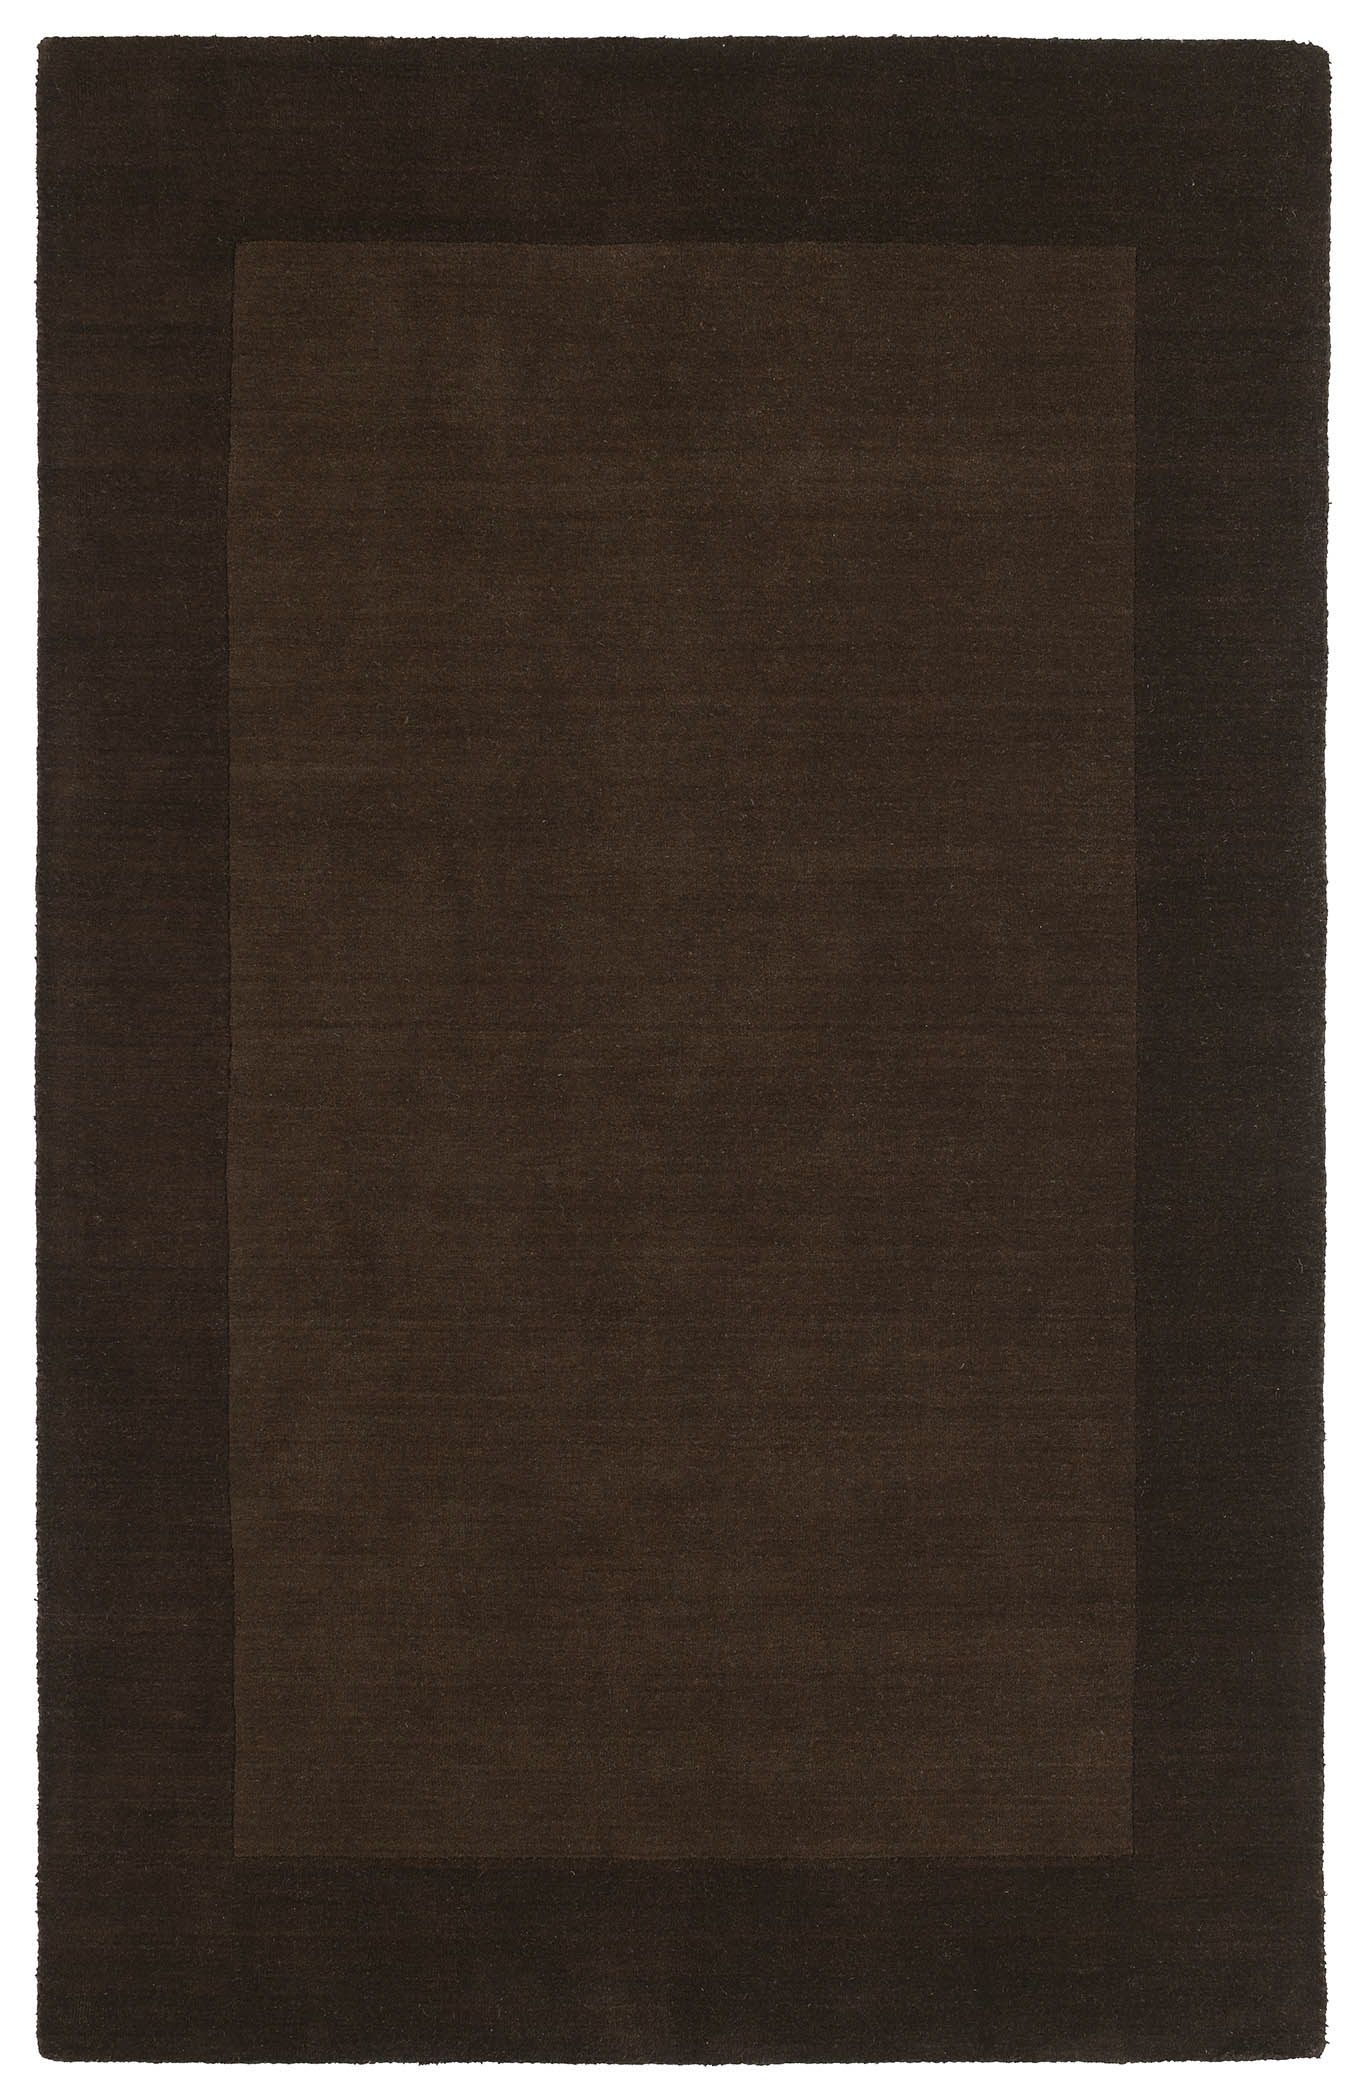 Kaleen Regency 7000 49 Brown Rug